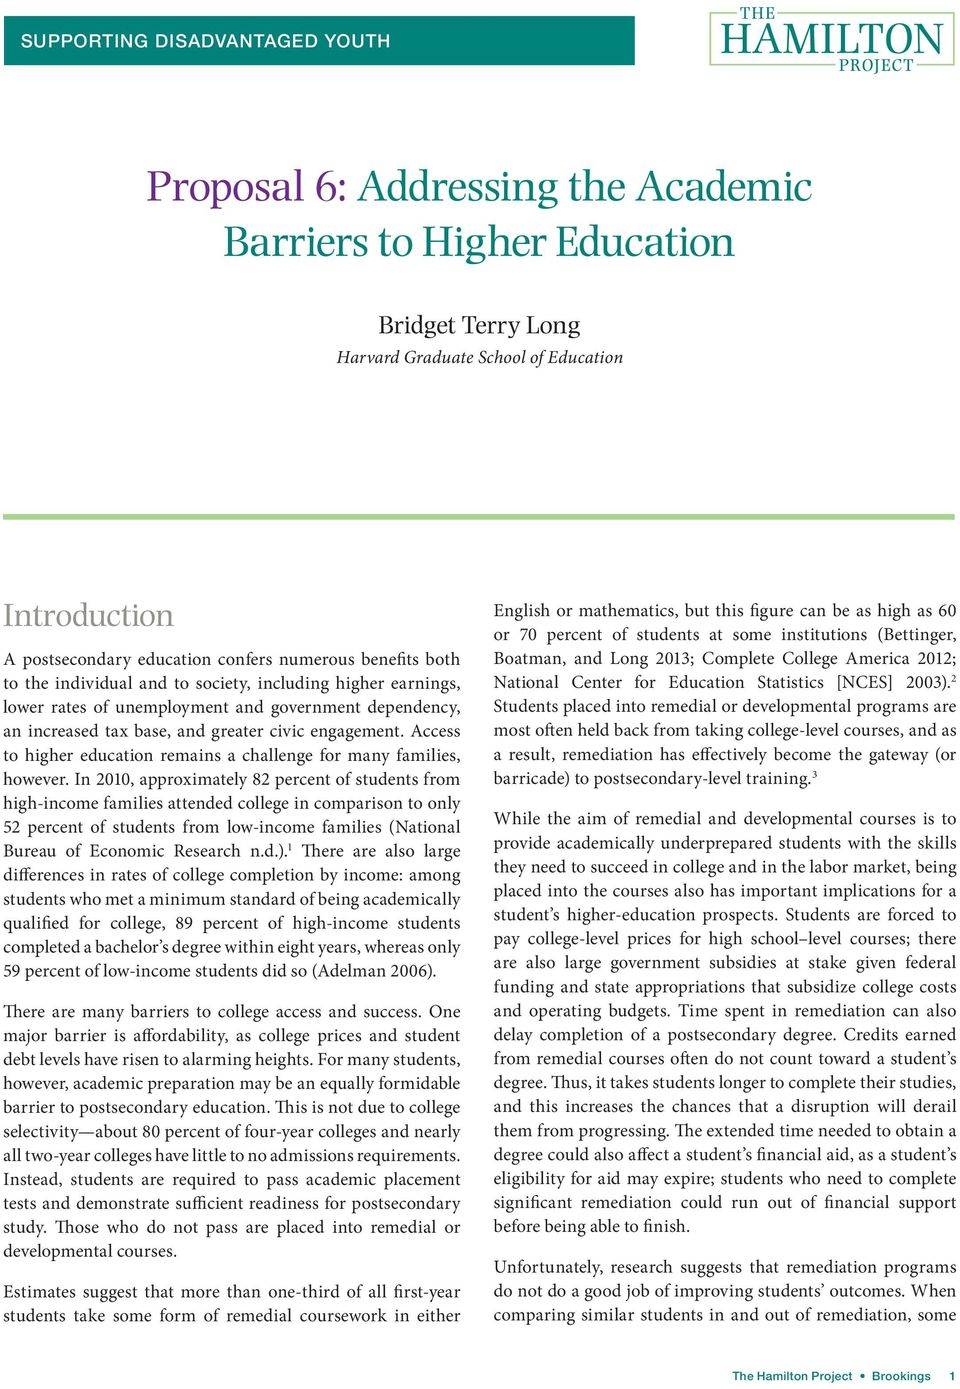 Access to higher education remains a challenge for many families, however.